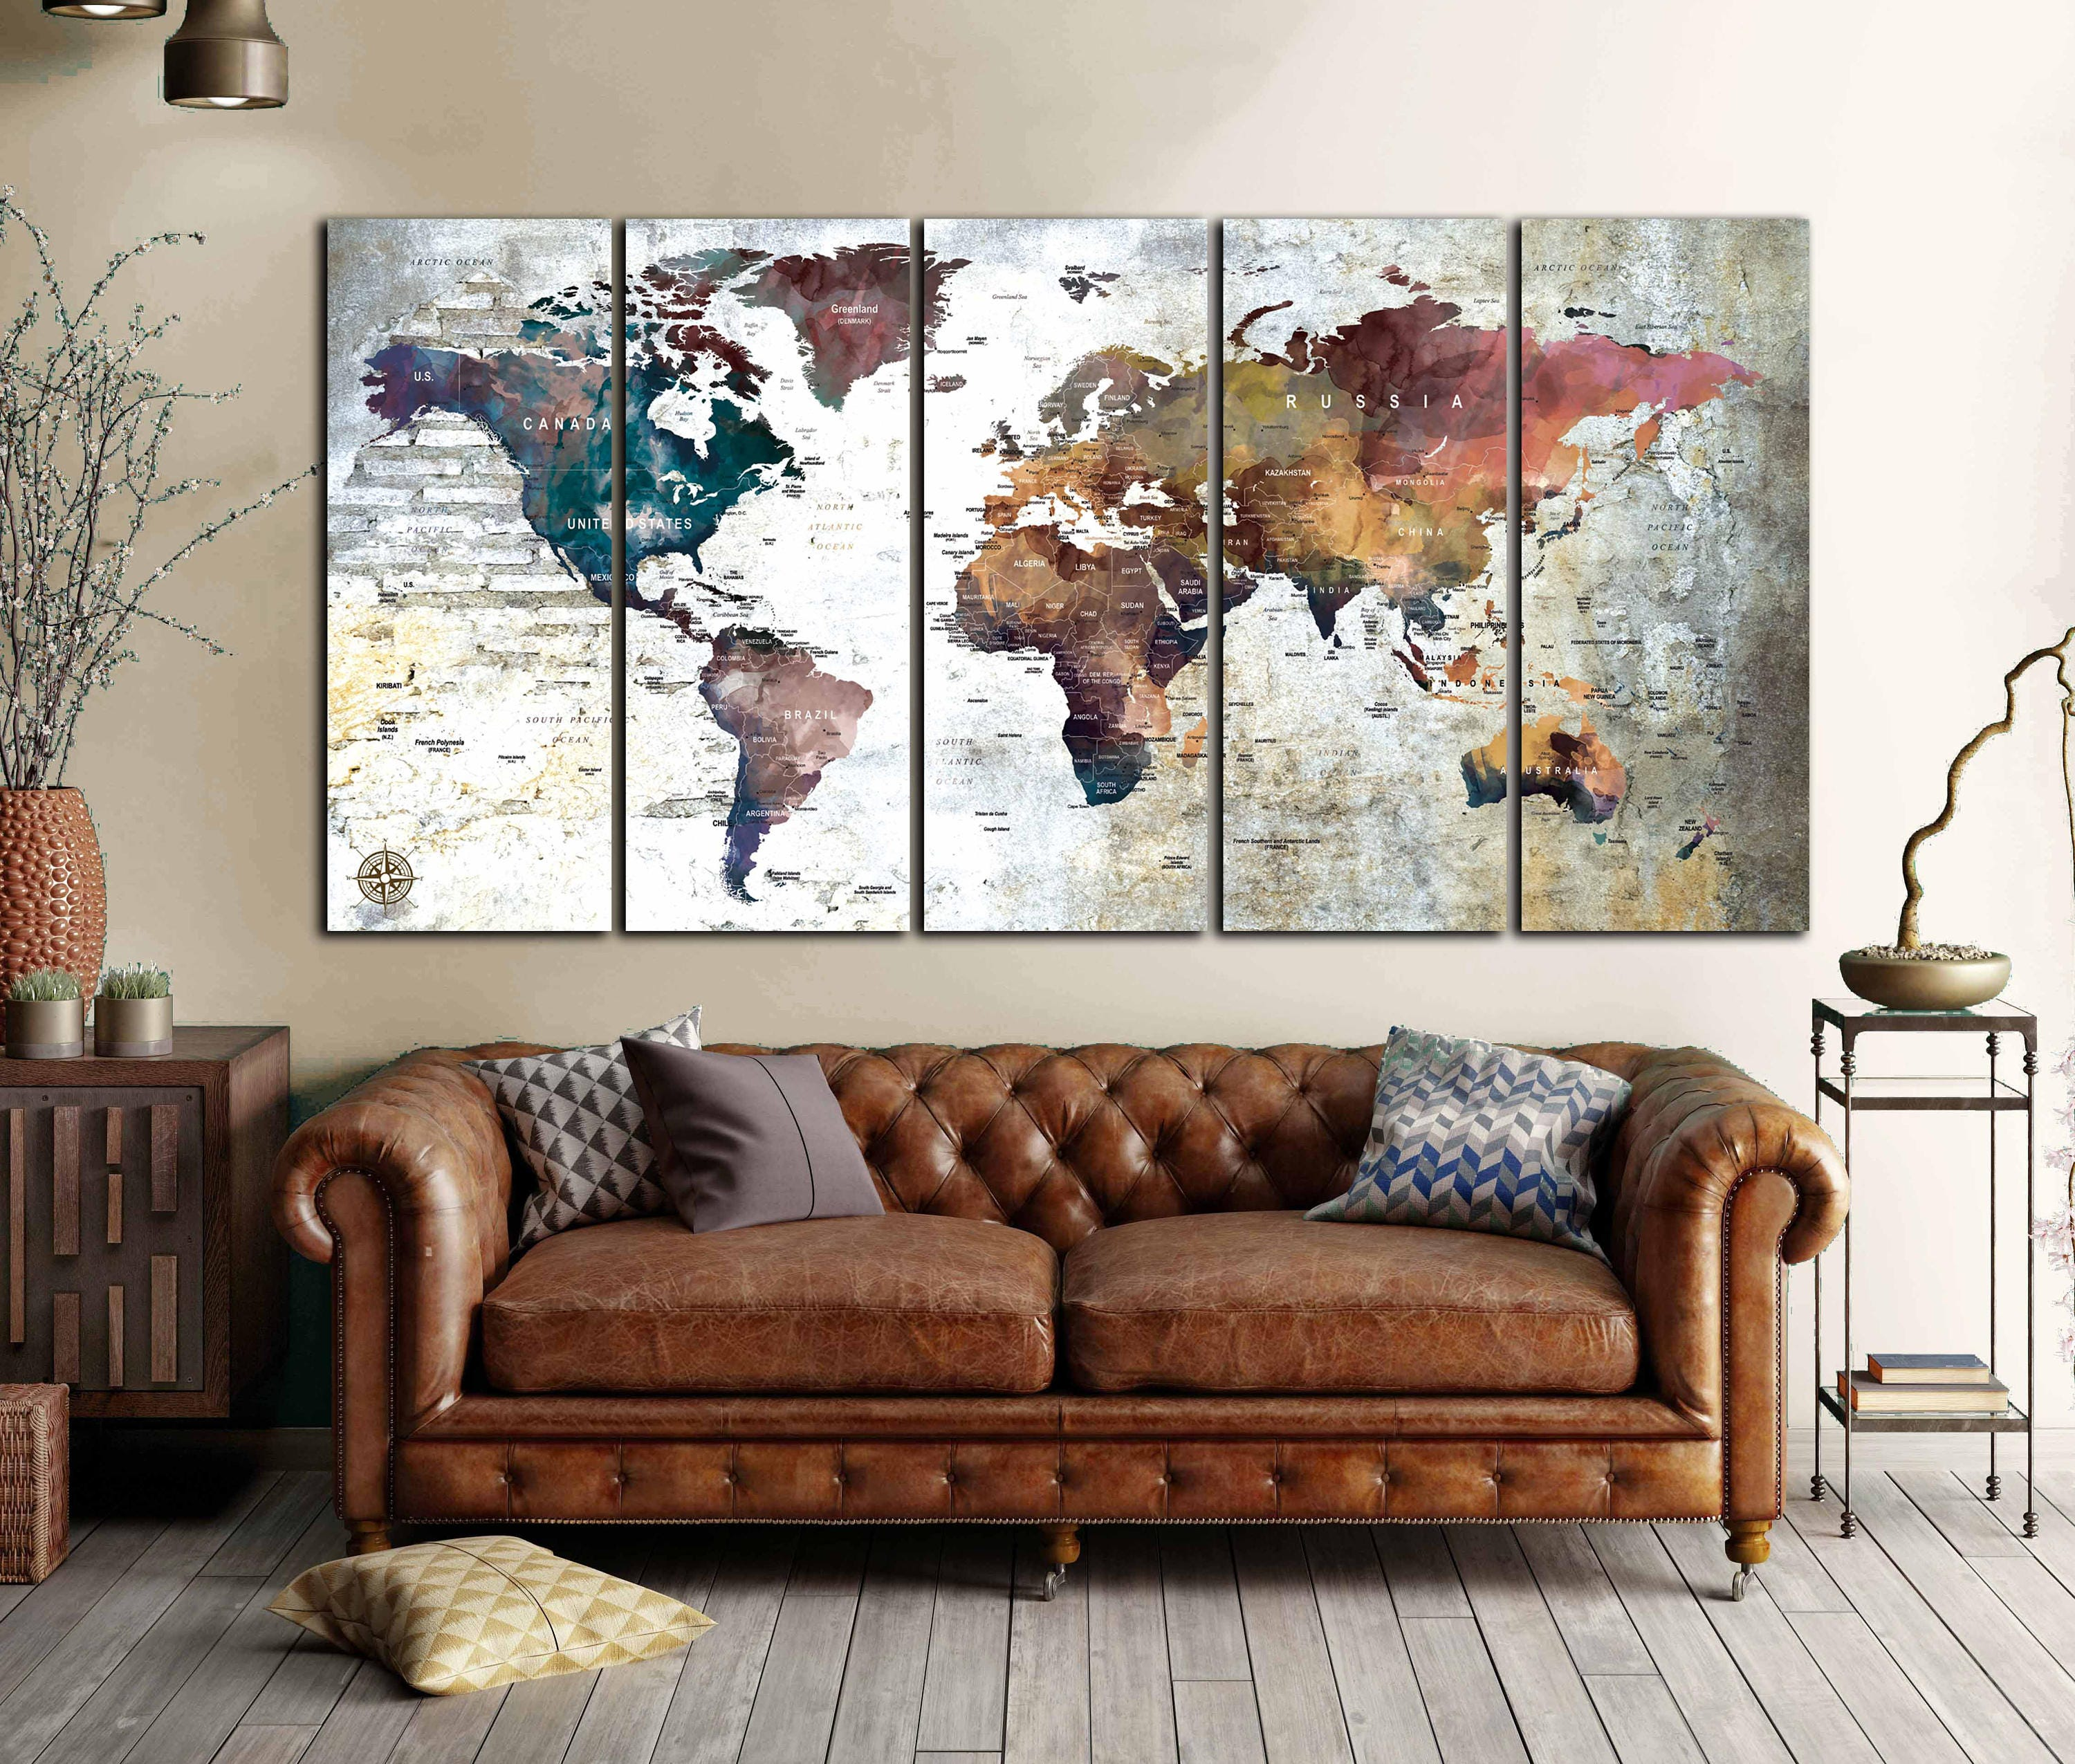 Large world map canvas panelsworld map wall artworld map art large world map canvas panelsworld map wall artworld map artworld map printworld map canvasworld map abstract artworld map vintage gumiabroncs Image collections